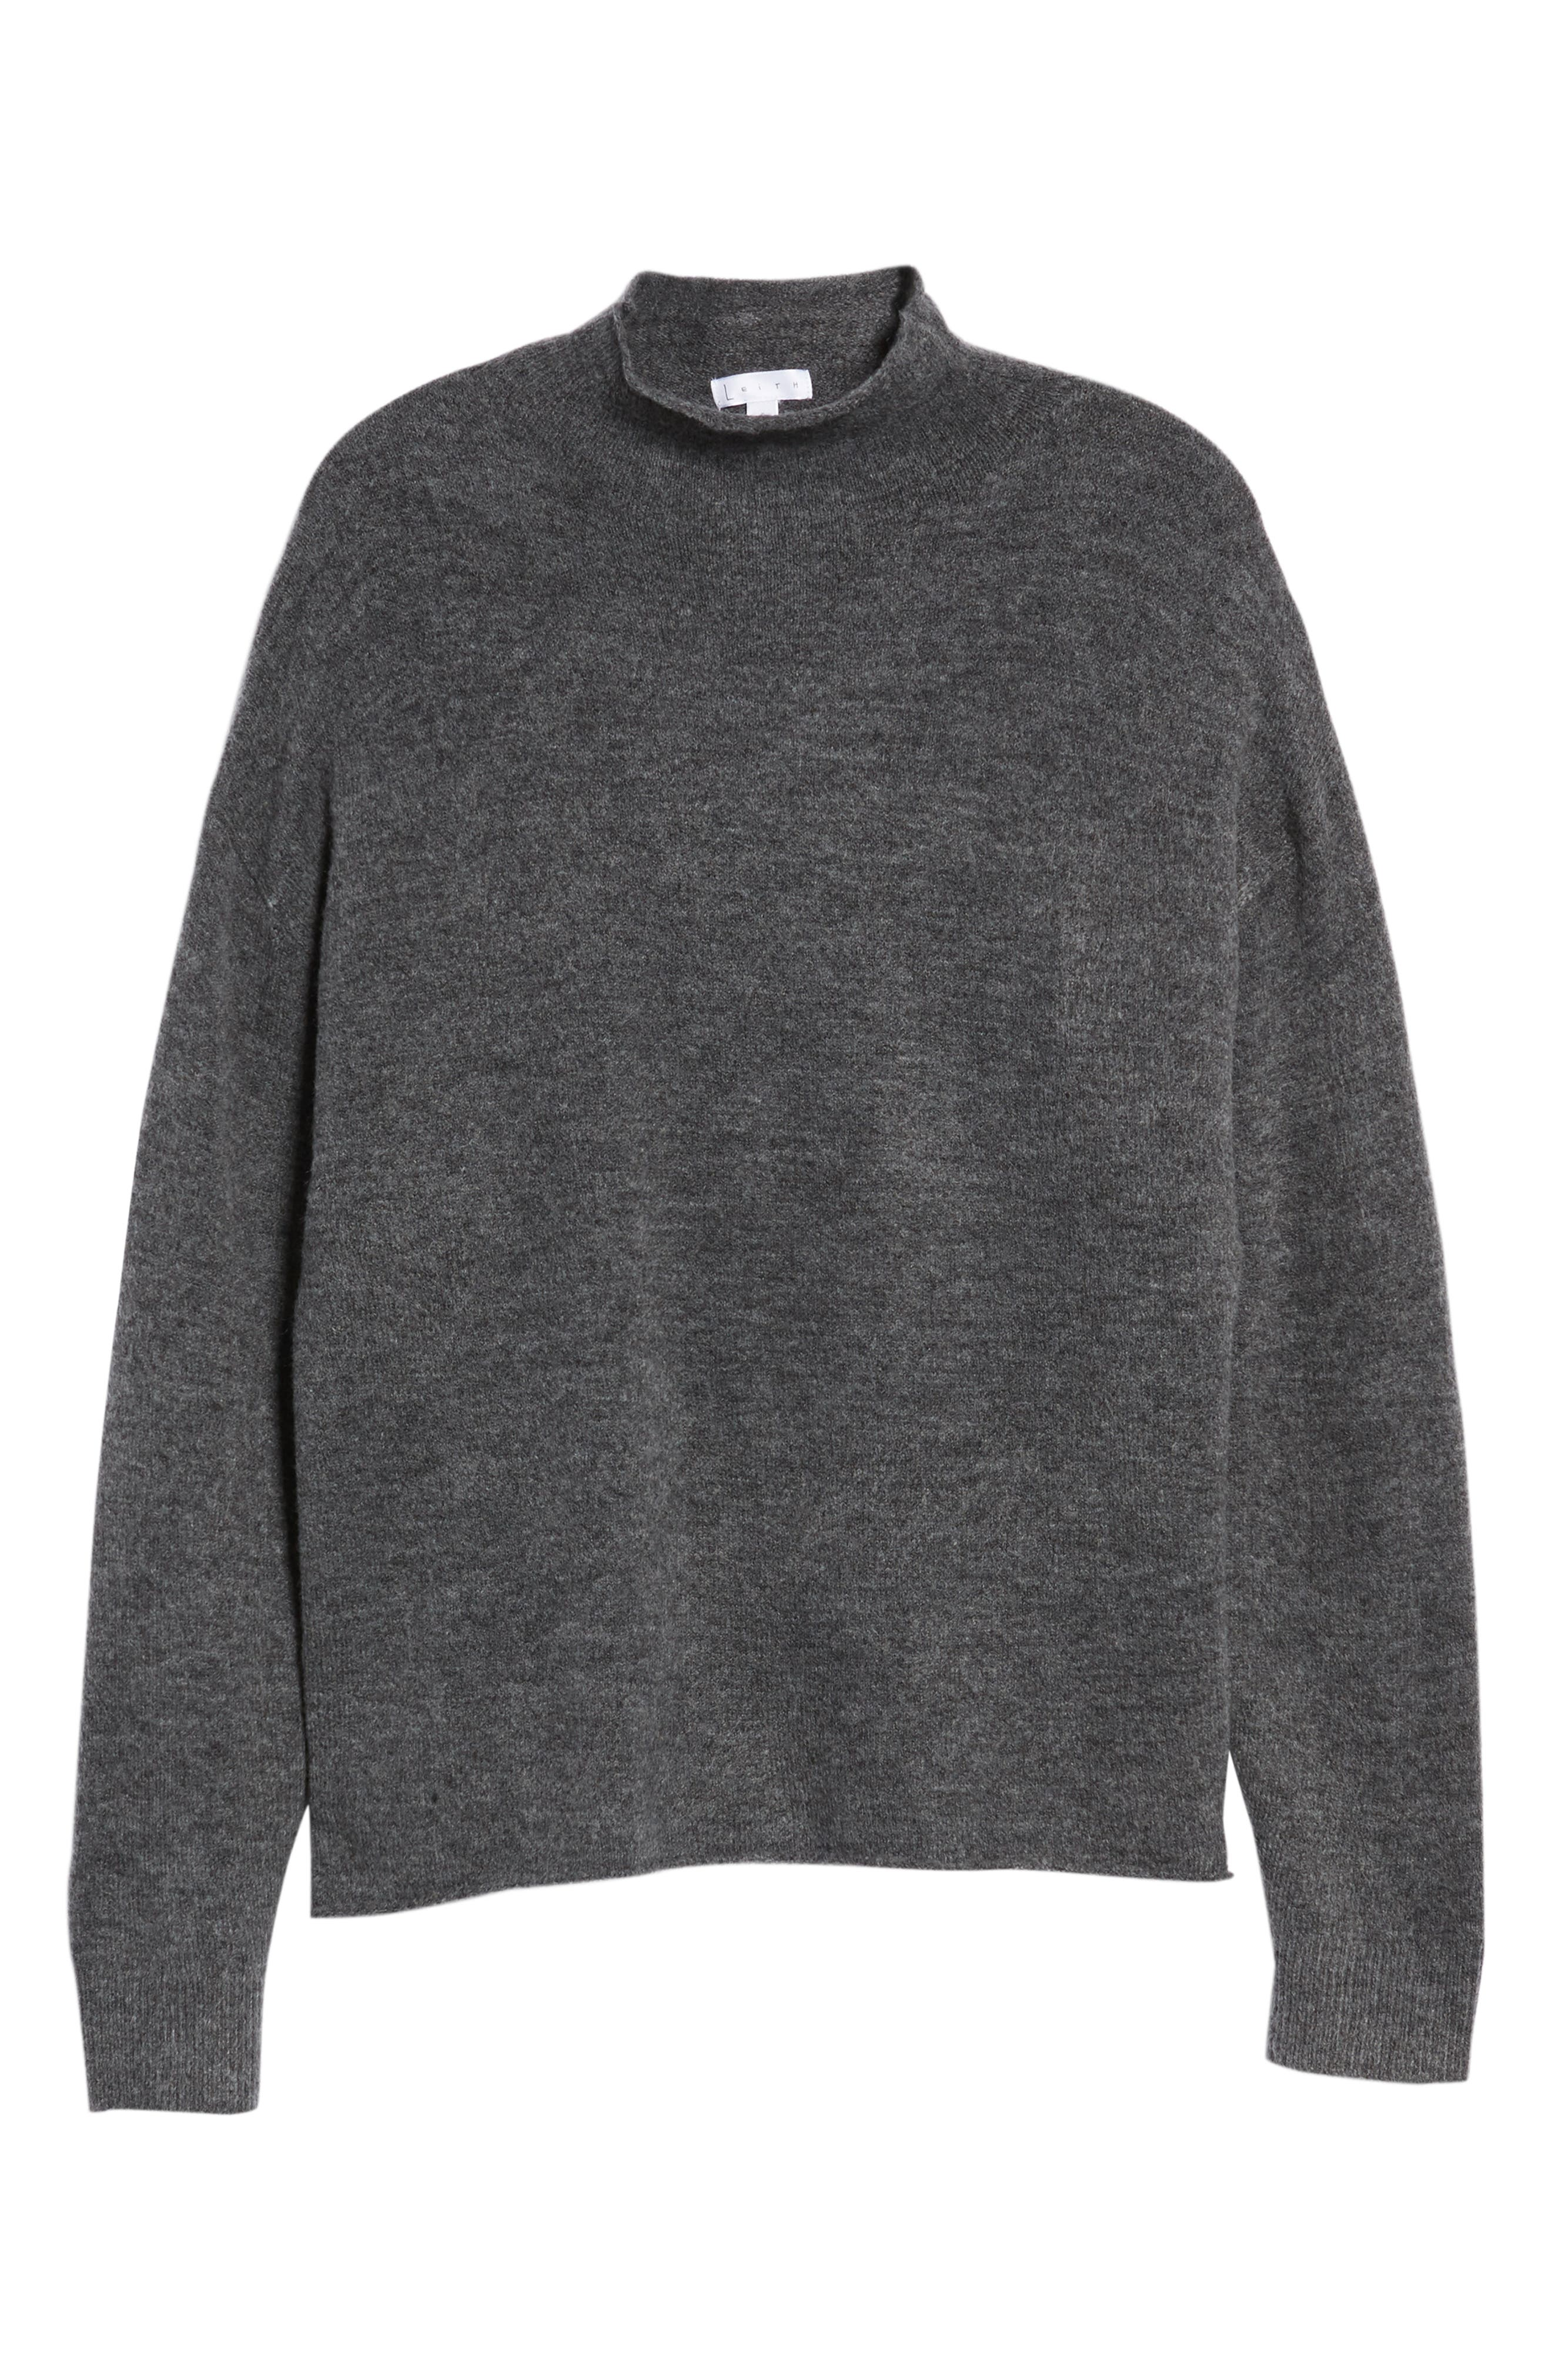 Cozy Mock Neck Sweater,                             Alternate thumbnail 6, color,                             GREY MEDIUM CHARCOAL HEATHER